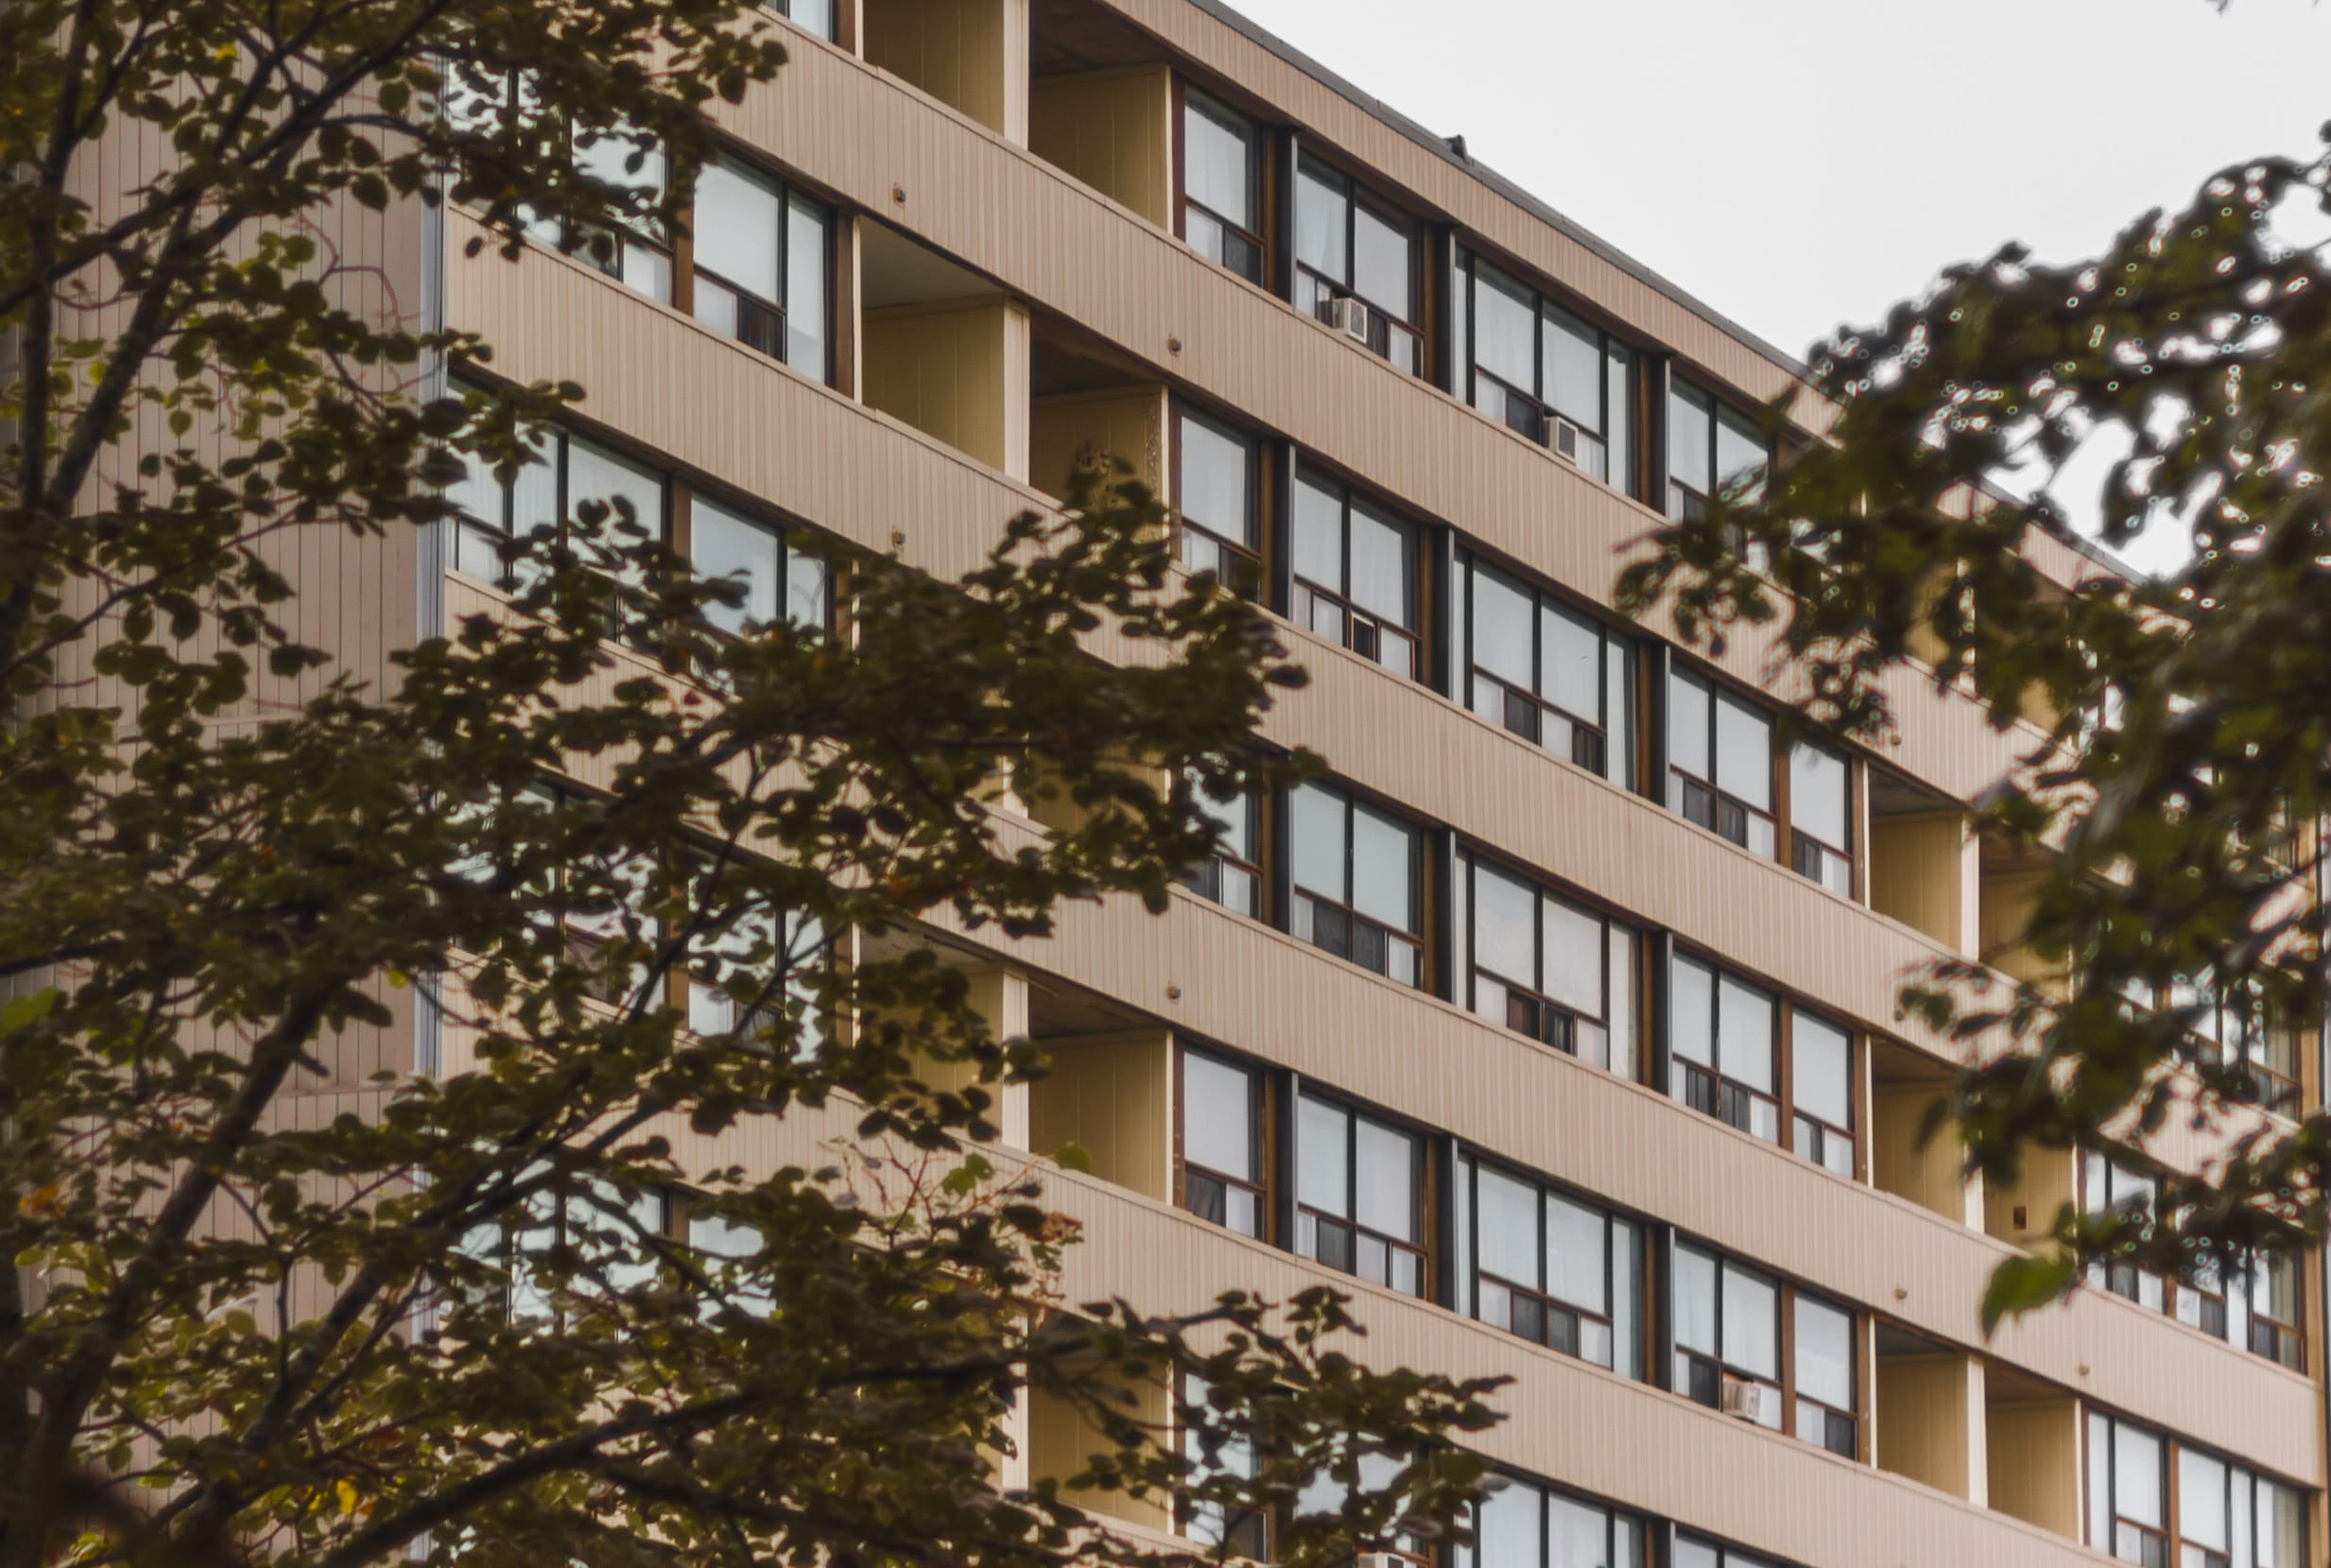 A photograph depicting Prince Edward Square Apartments Through Trees